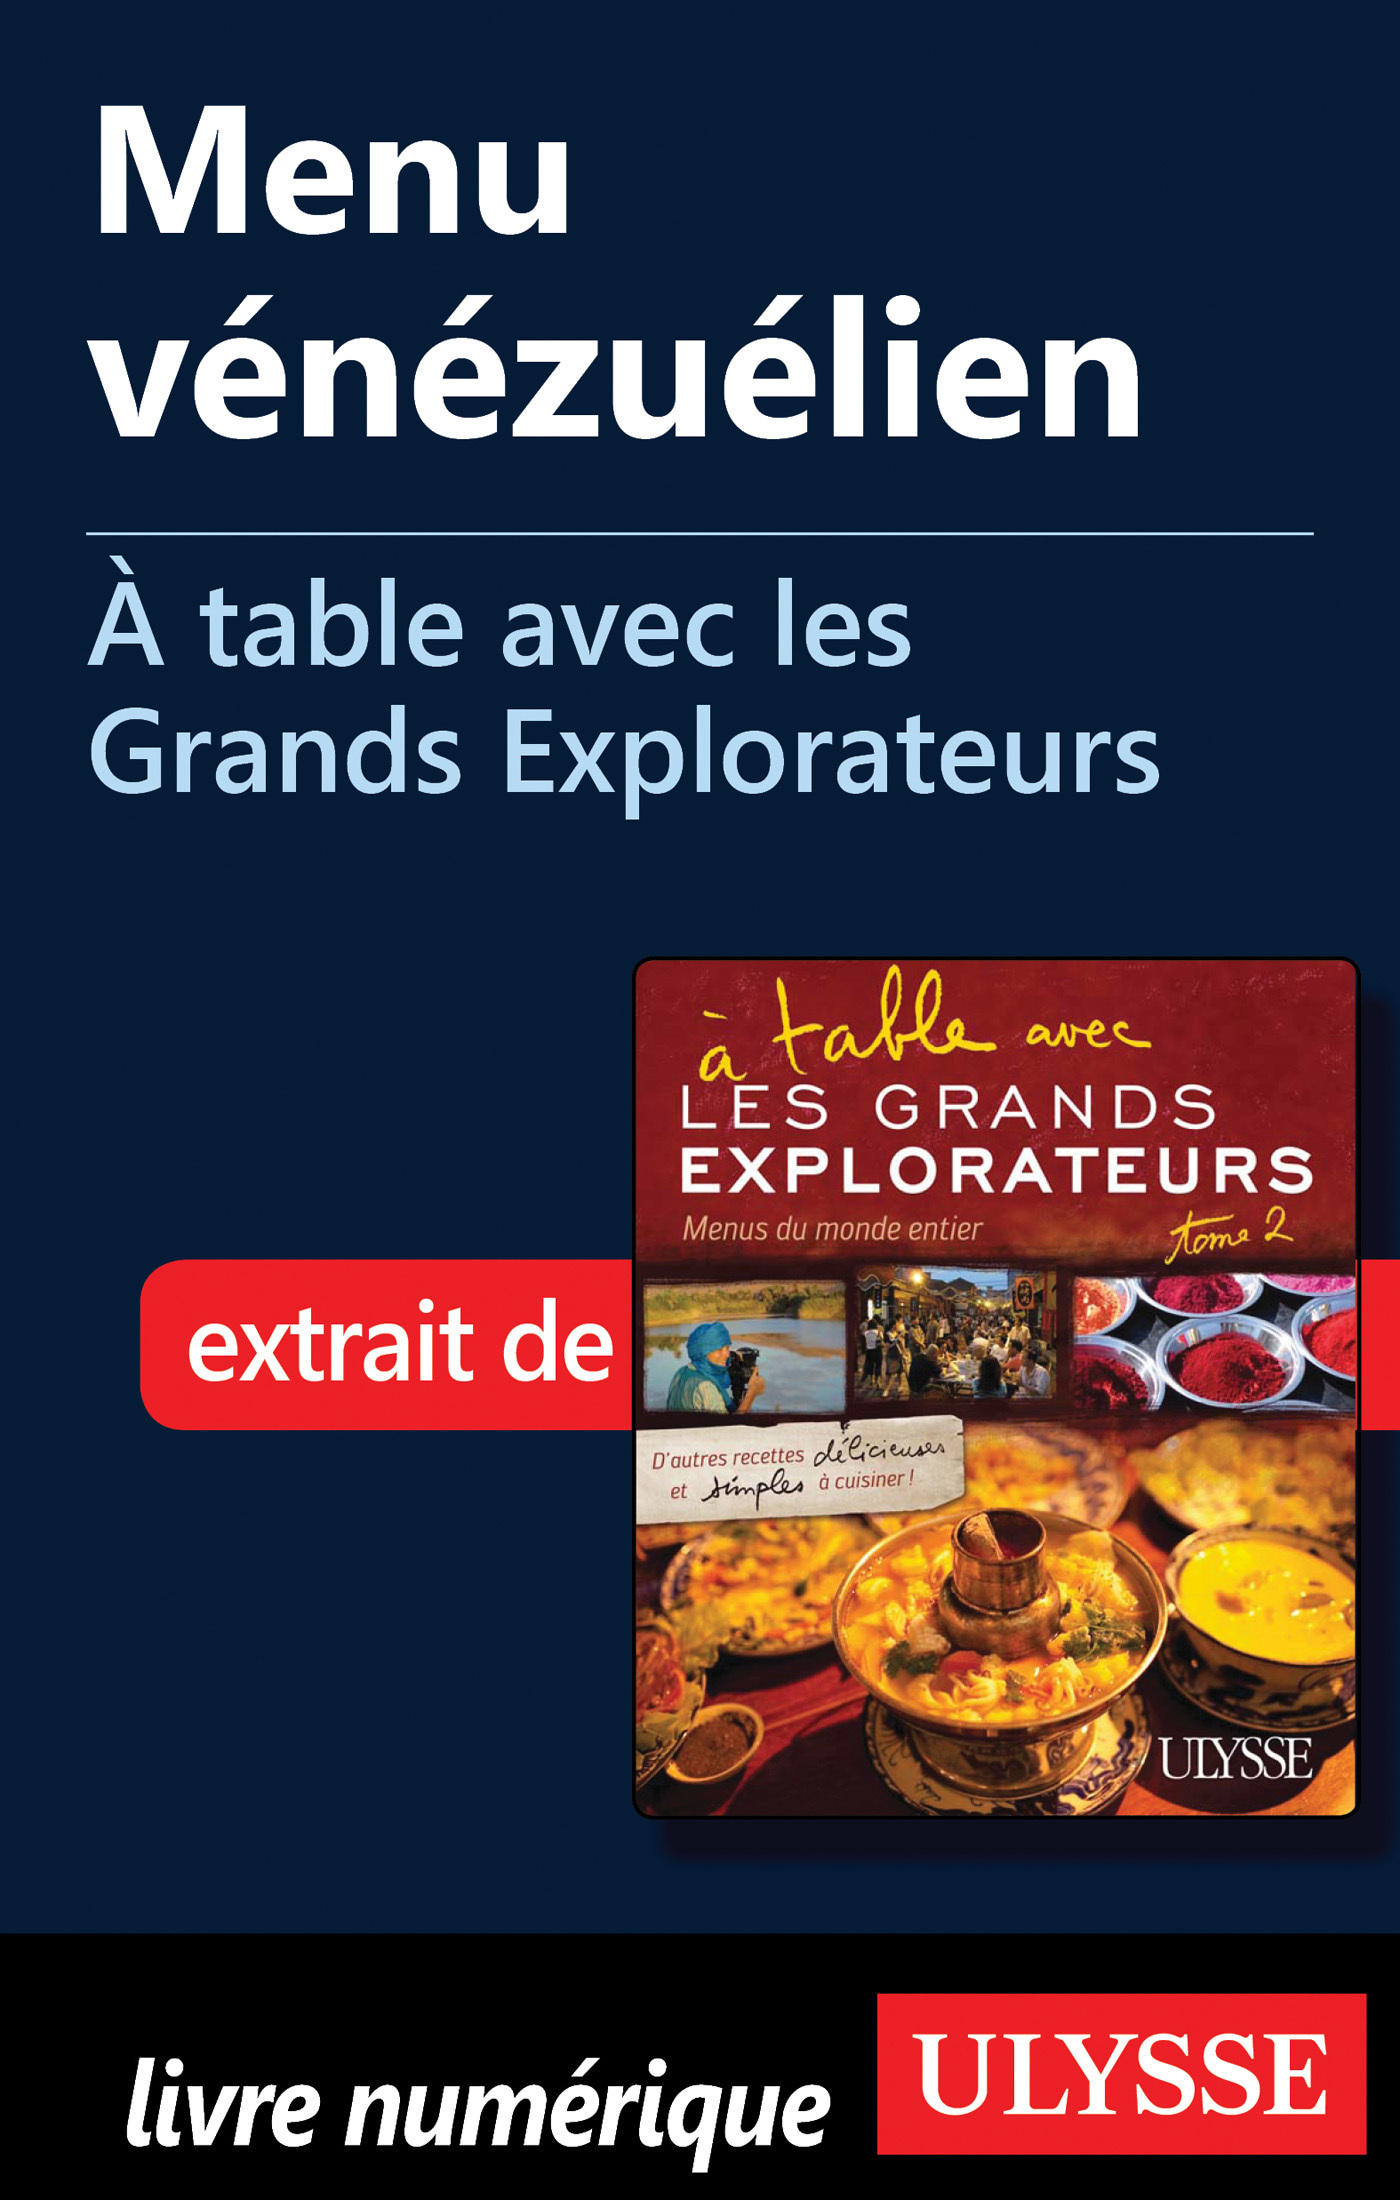 Menu vénézuélien - A table avec les Grands Explorateurs